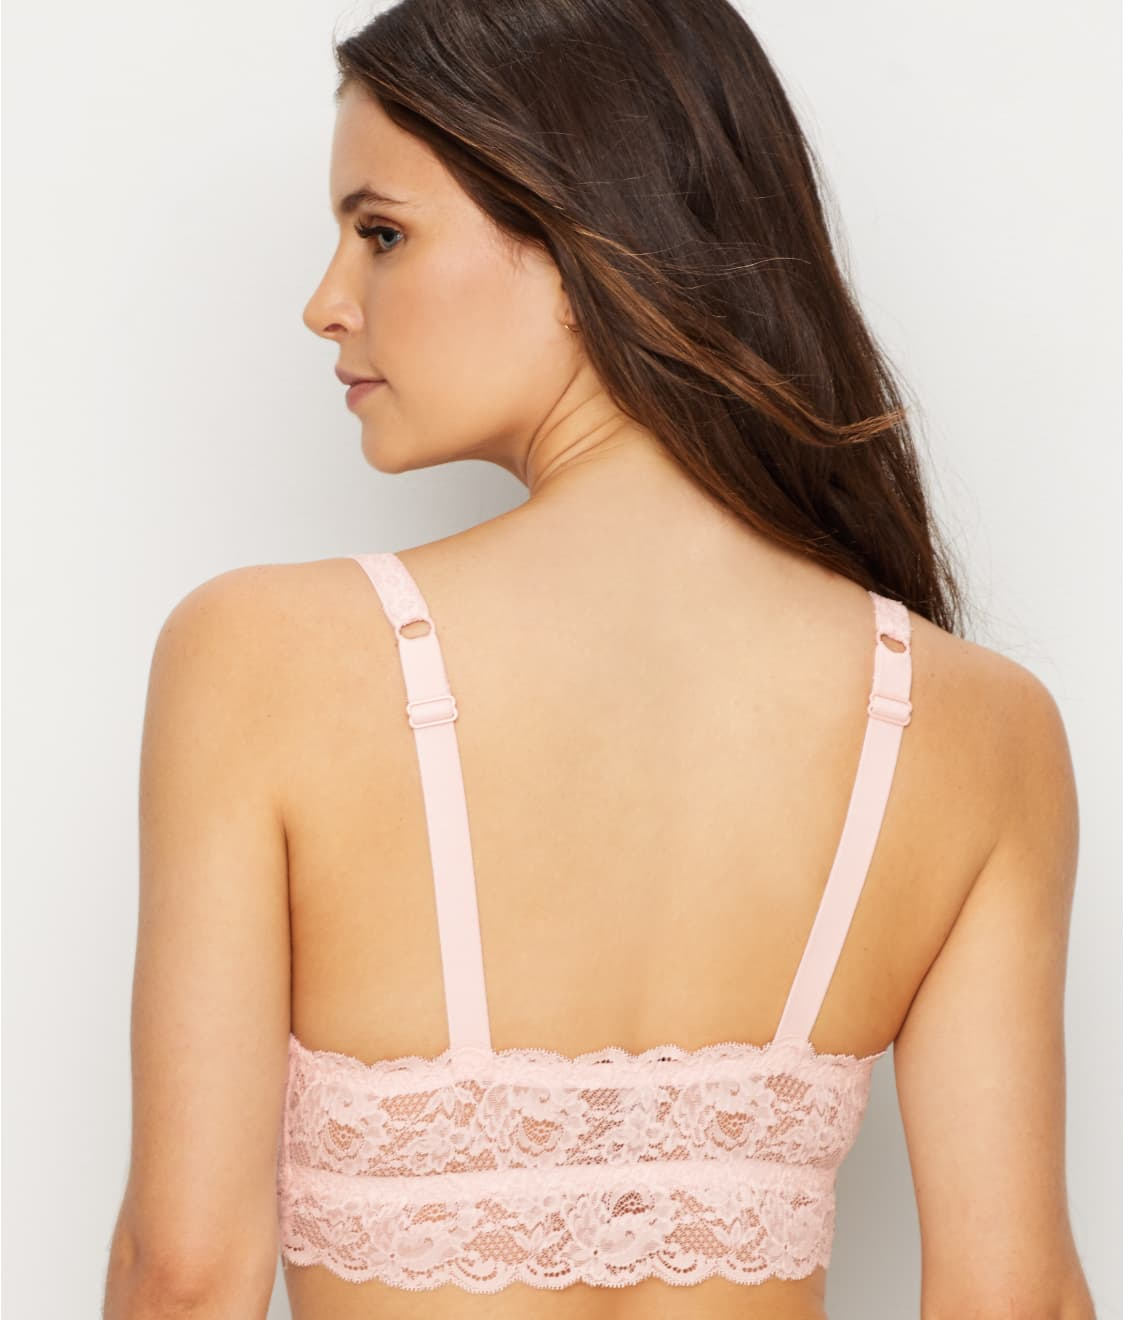 9970c1a5b0a36 See Never Say Never Sweetie Curvy Bralette in Pink Lily